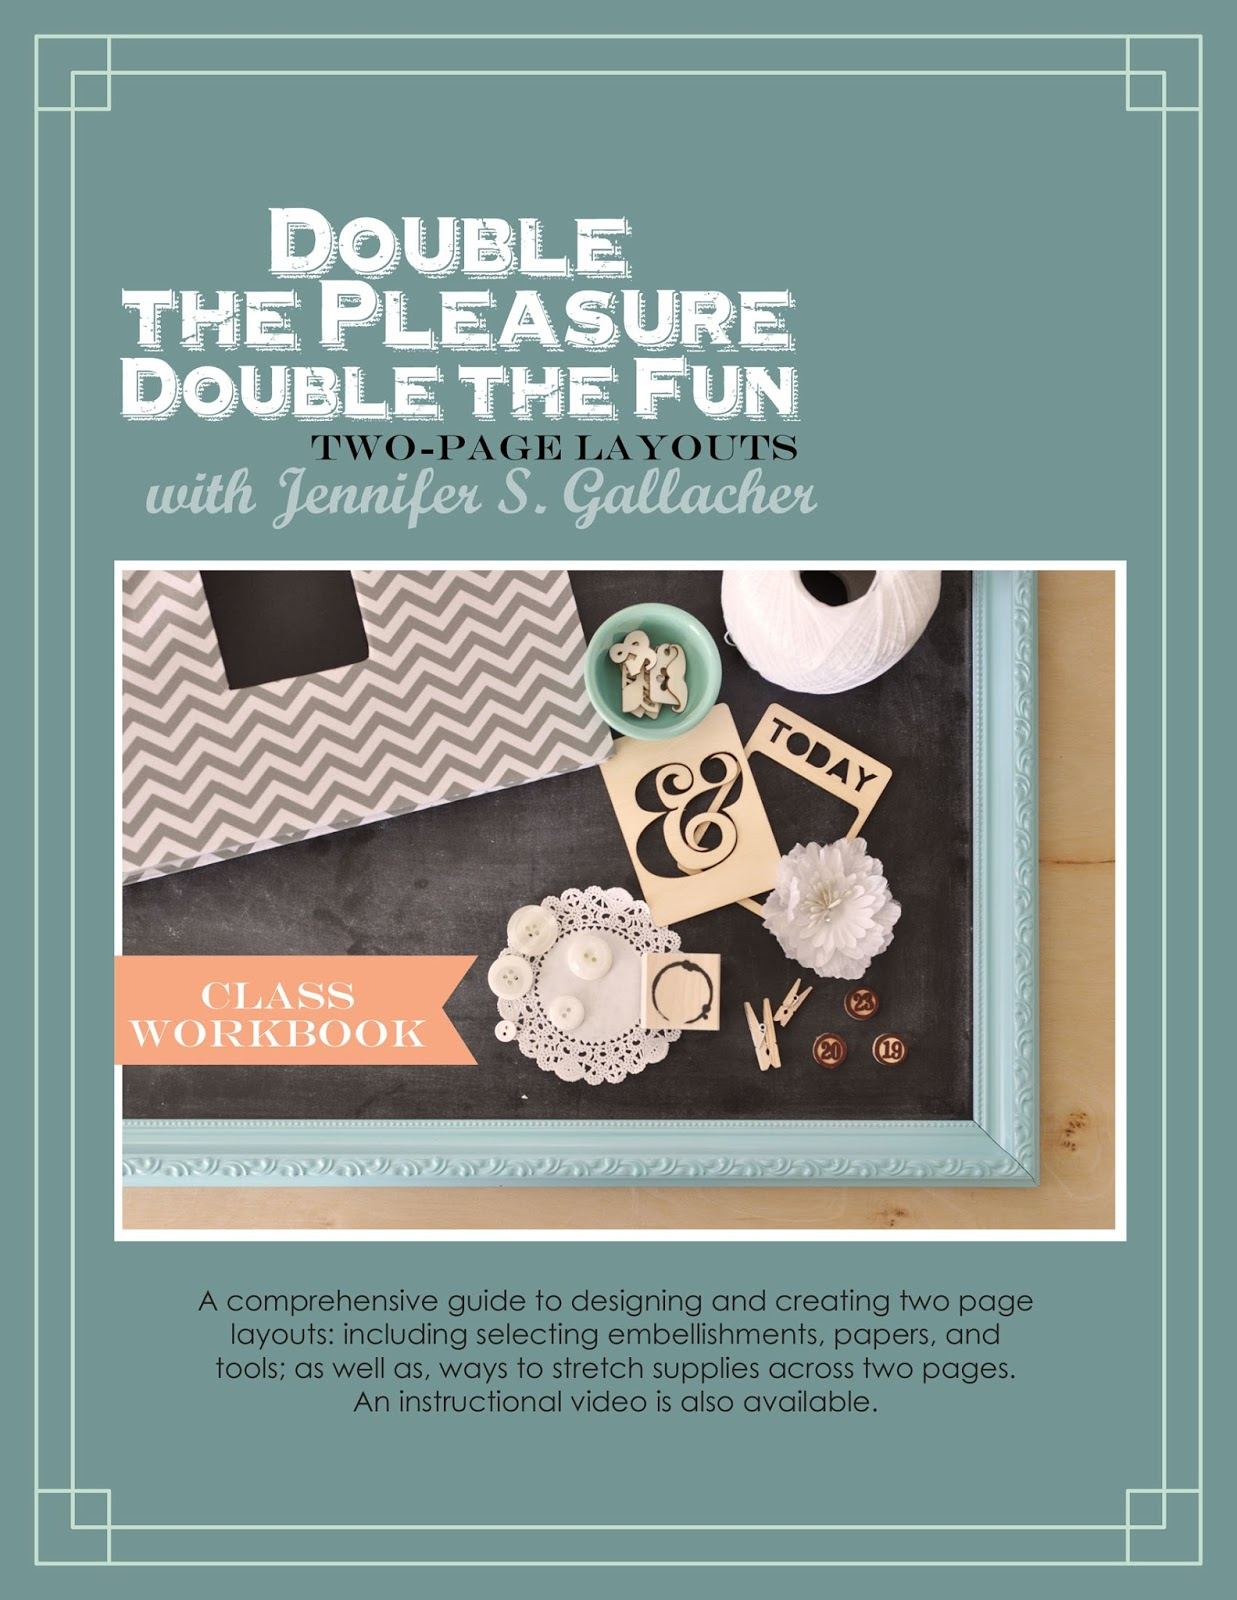 http://jen-gallacher.mybigcommerce.com/double-the-pleasure-double-page-scrapbooking-ebook/